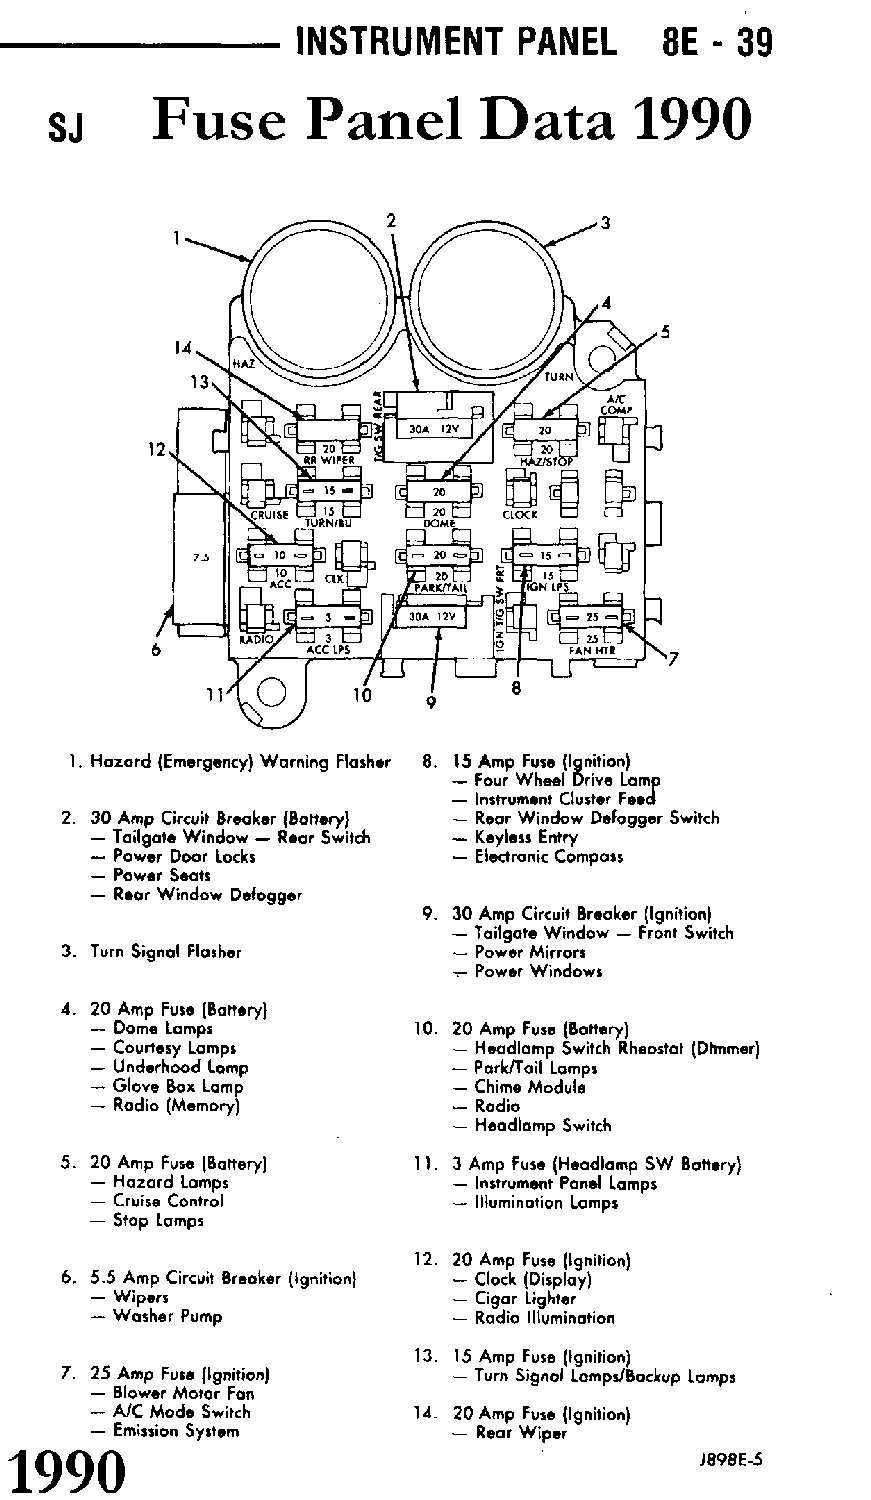 1990 Jeep Yj Fuse Panel Diagram Diy Enthusiasts Wiring Diagrams 1999 Wrangler Box Wagoneer Enthusiast U2022 Rh Rasalibre Co